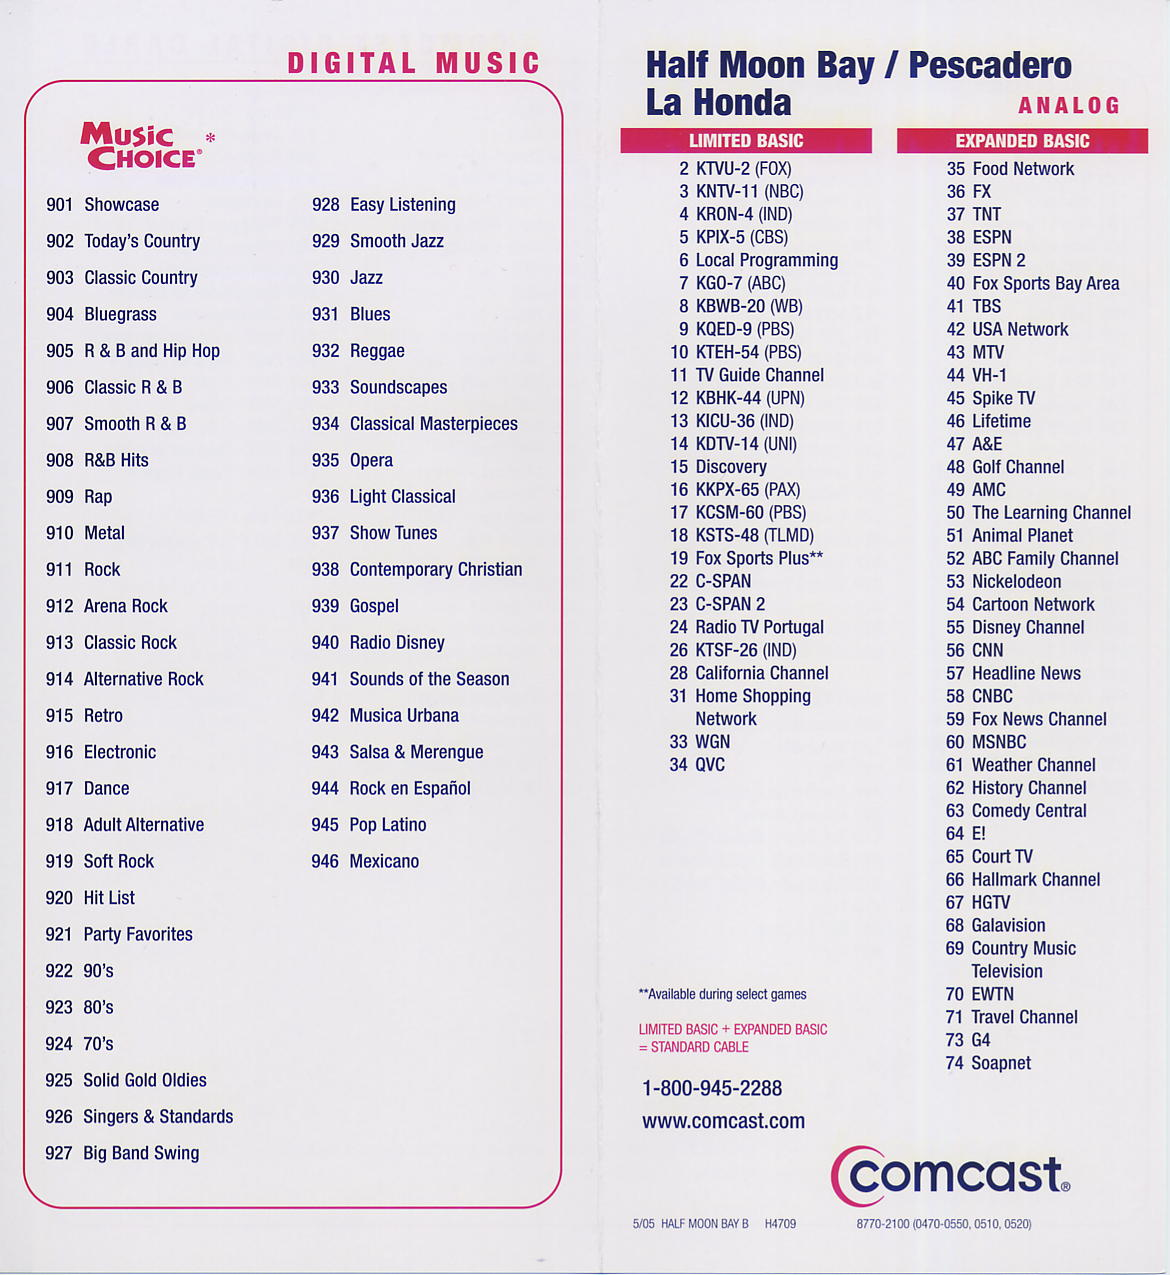 Handy image with printable comcast channel lineup